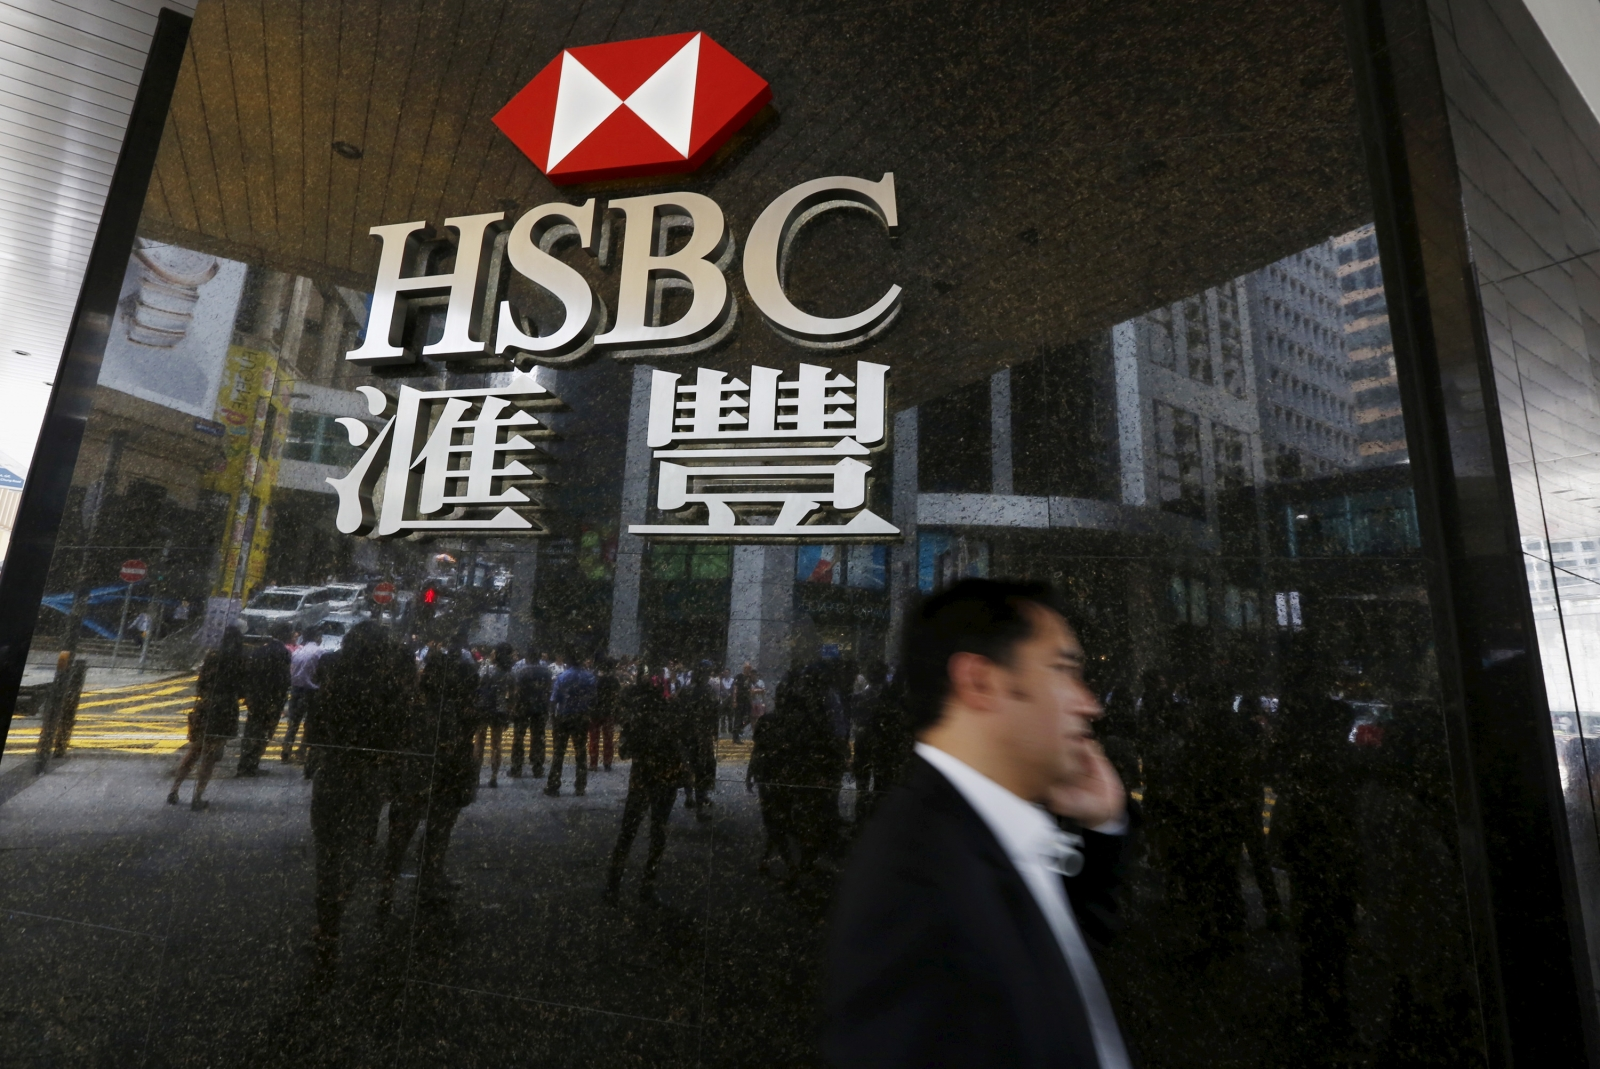 HSBC to shut 24 retail branches in India after review shows customers preferred digital services